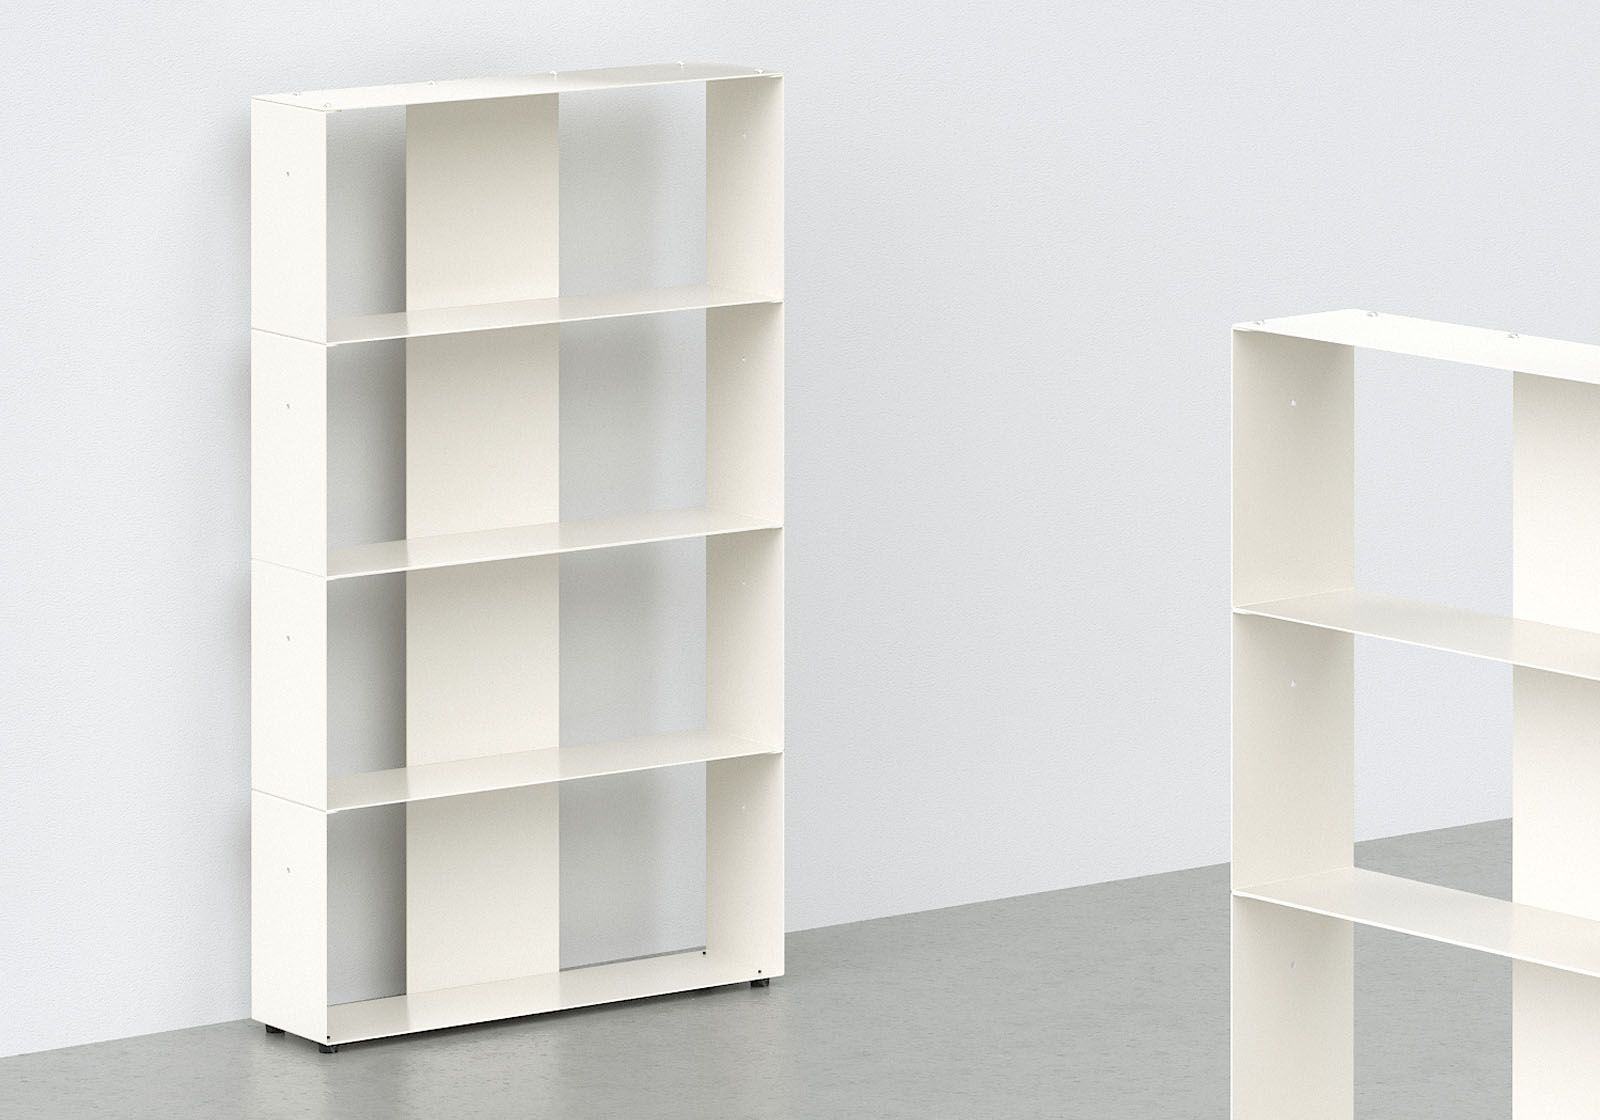 meuble biblioth que 60 cm m tal blanc 4 niveaux. Black Bedroom Furniture Sets. Home Design Ideas